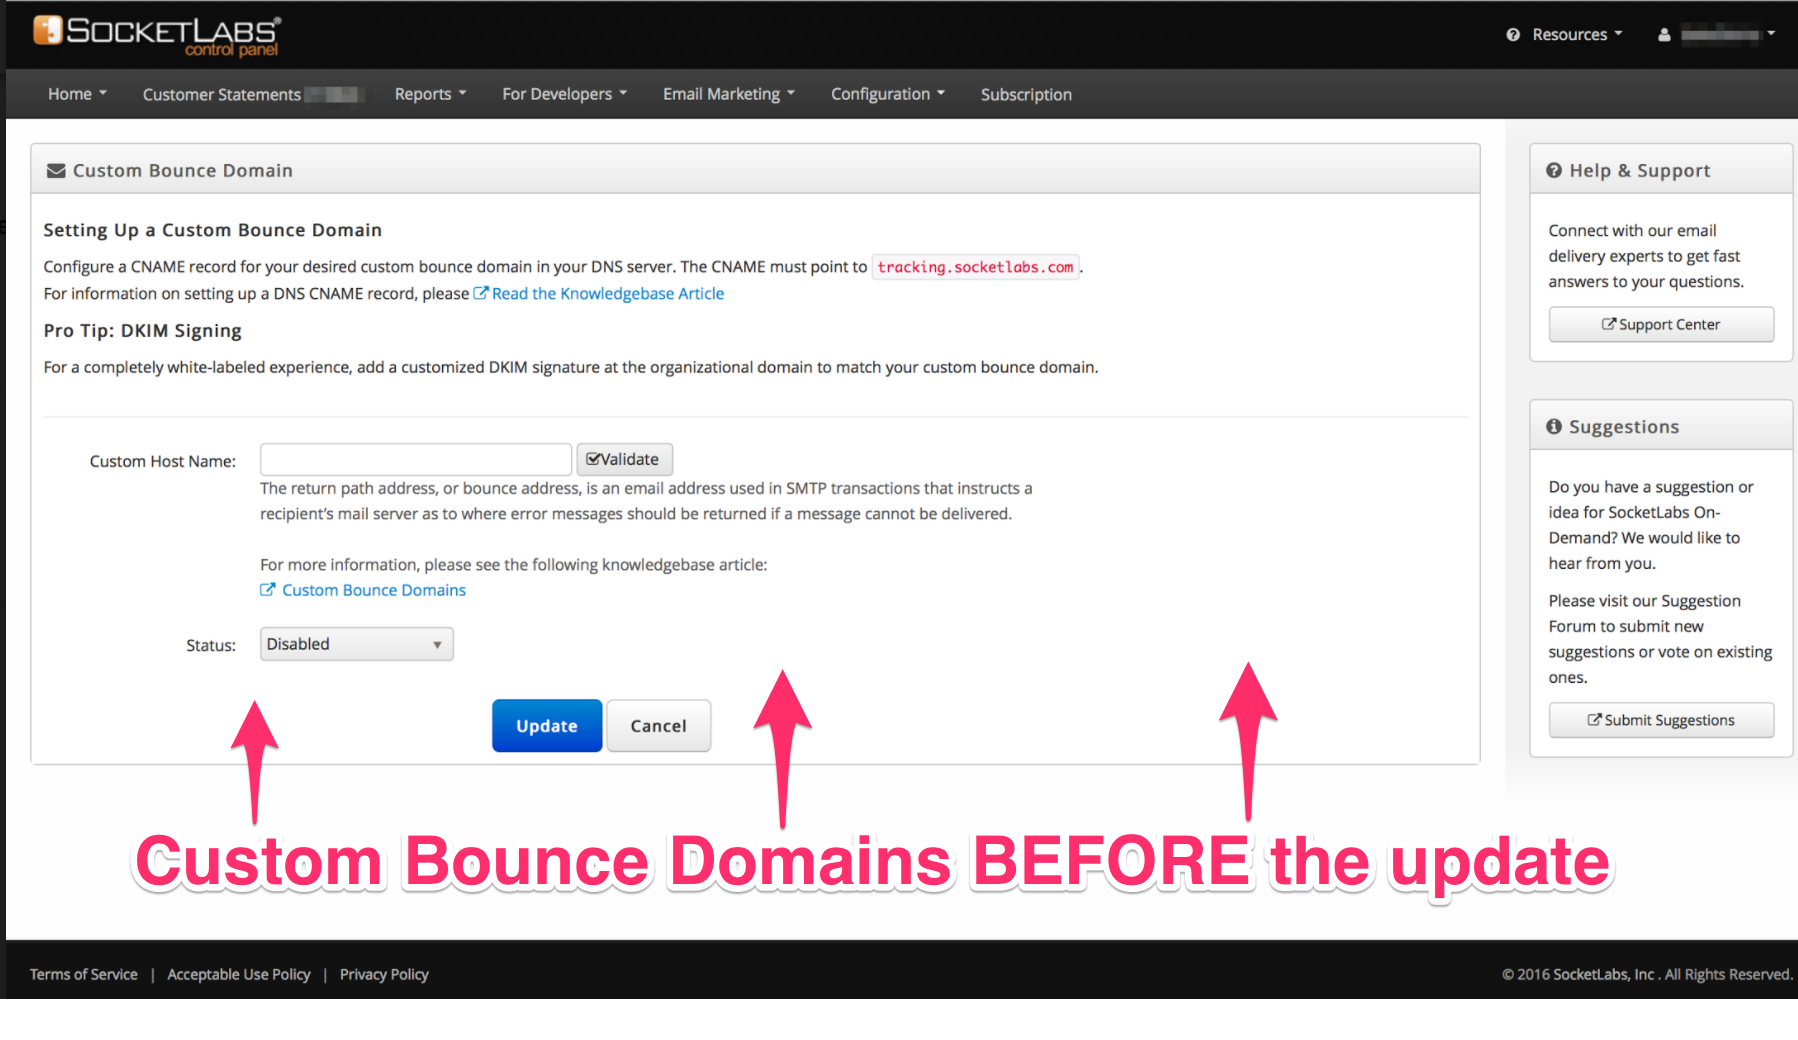 Custom Bounce Domains Before